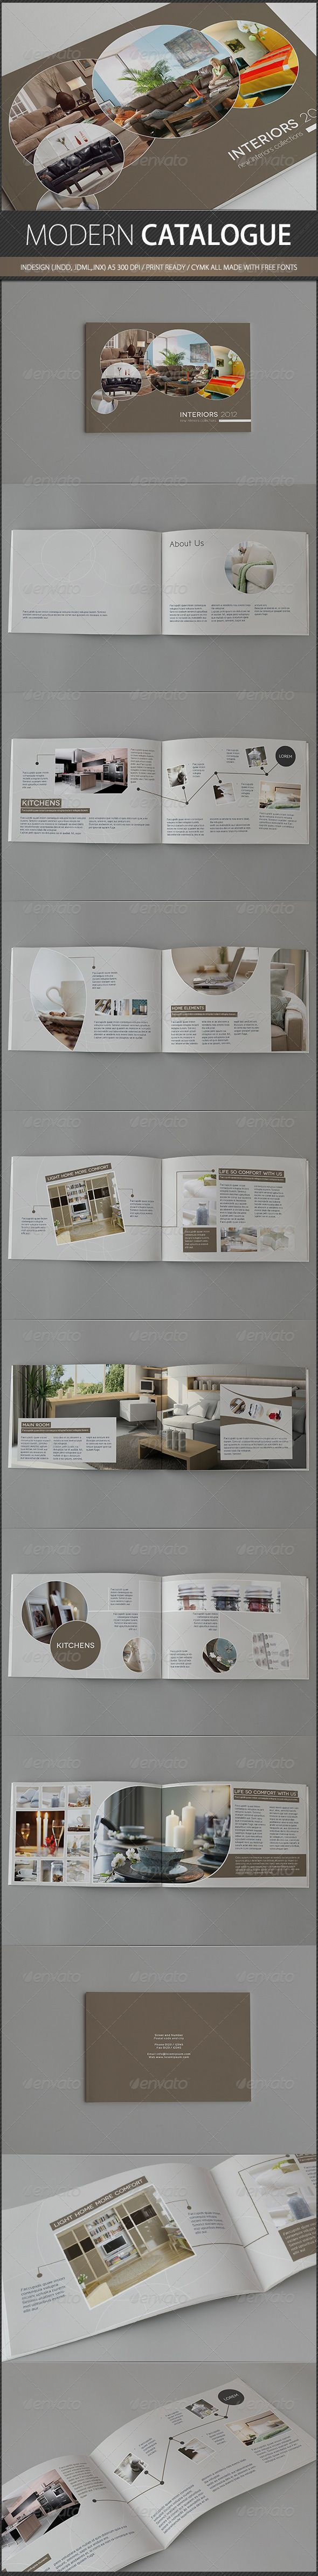 This is like a brochure more than a portfolio, I can get some ideas from it, but not as its way.